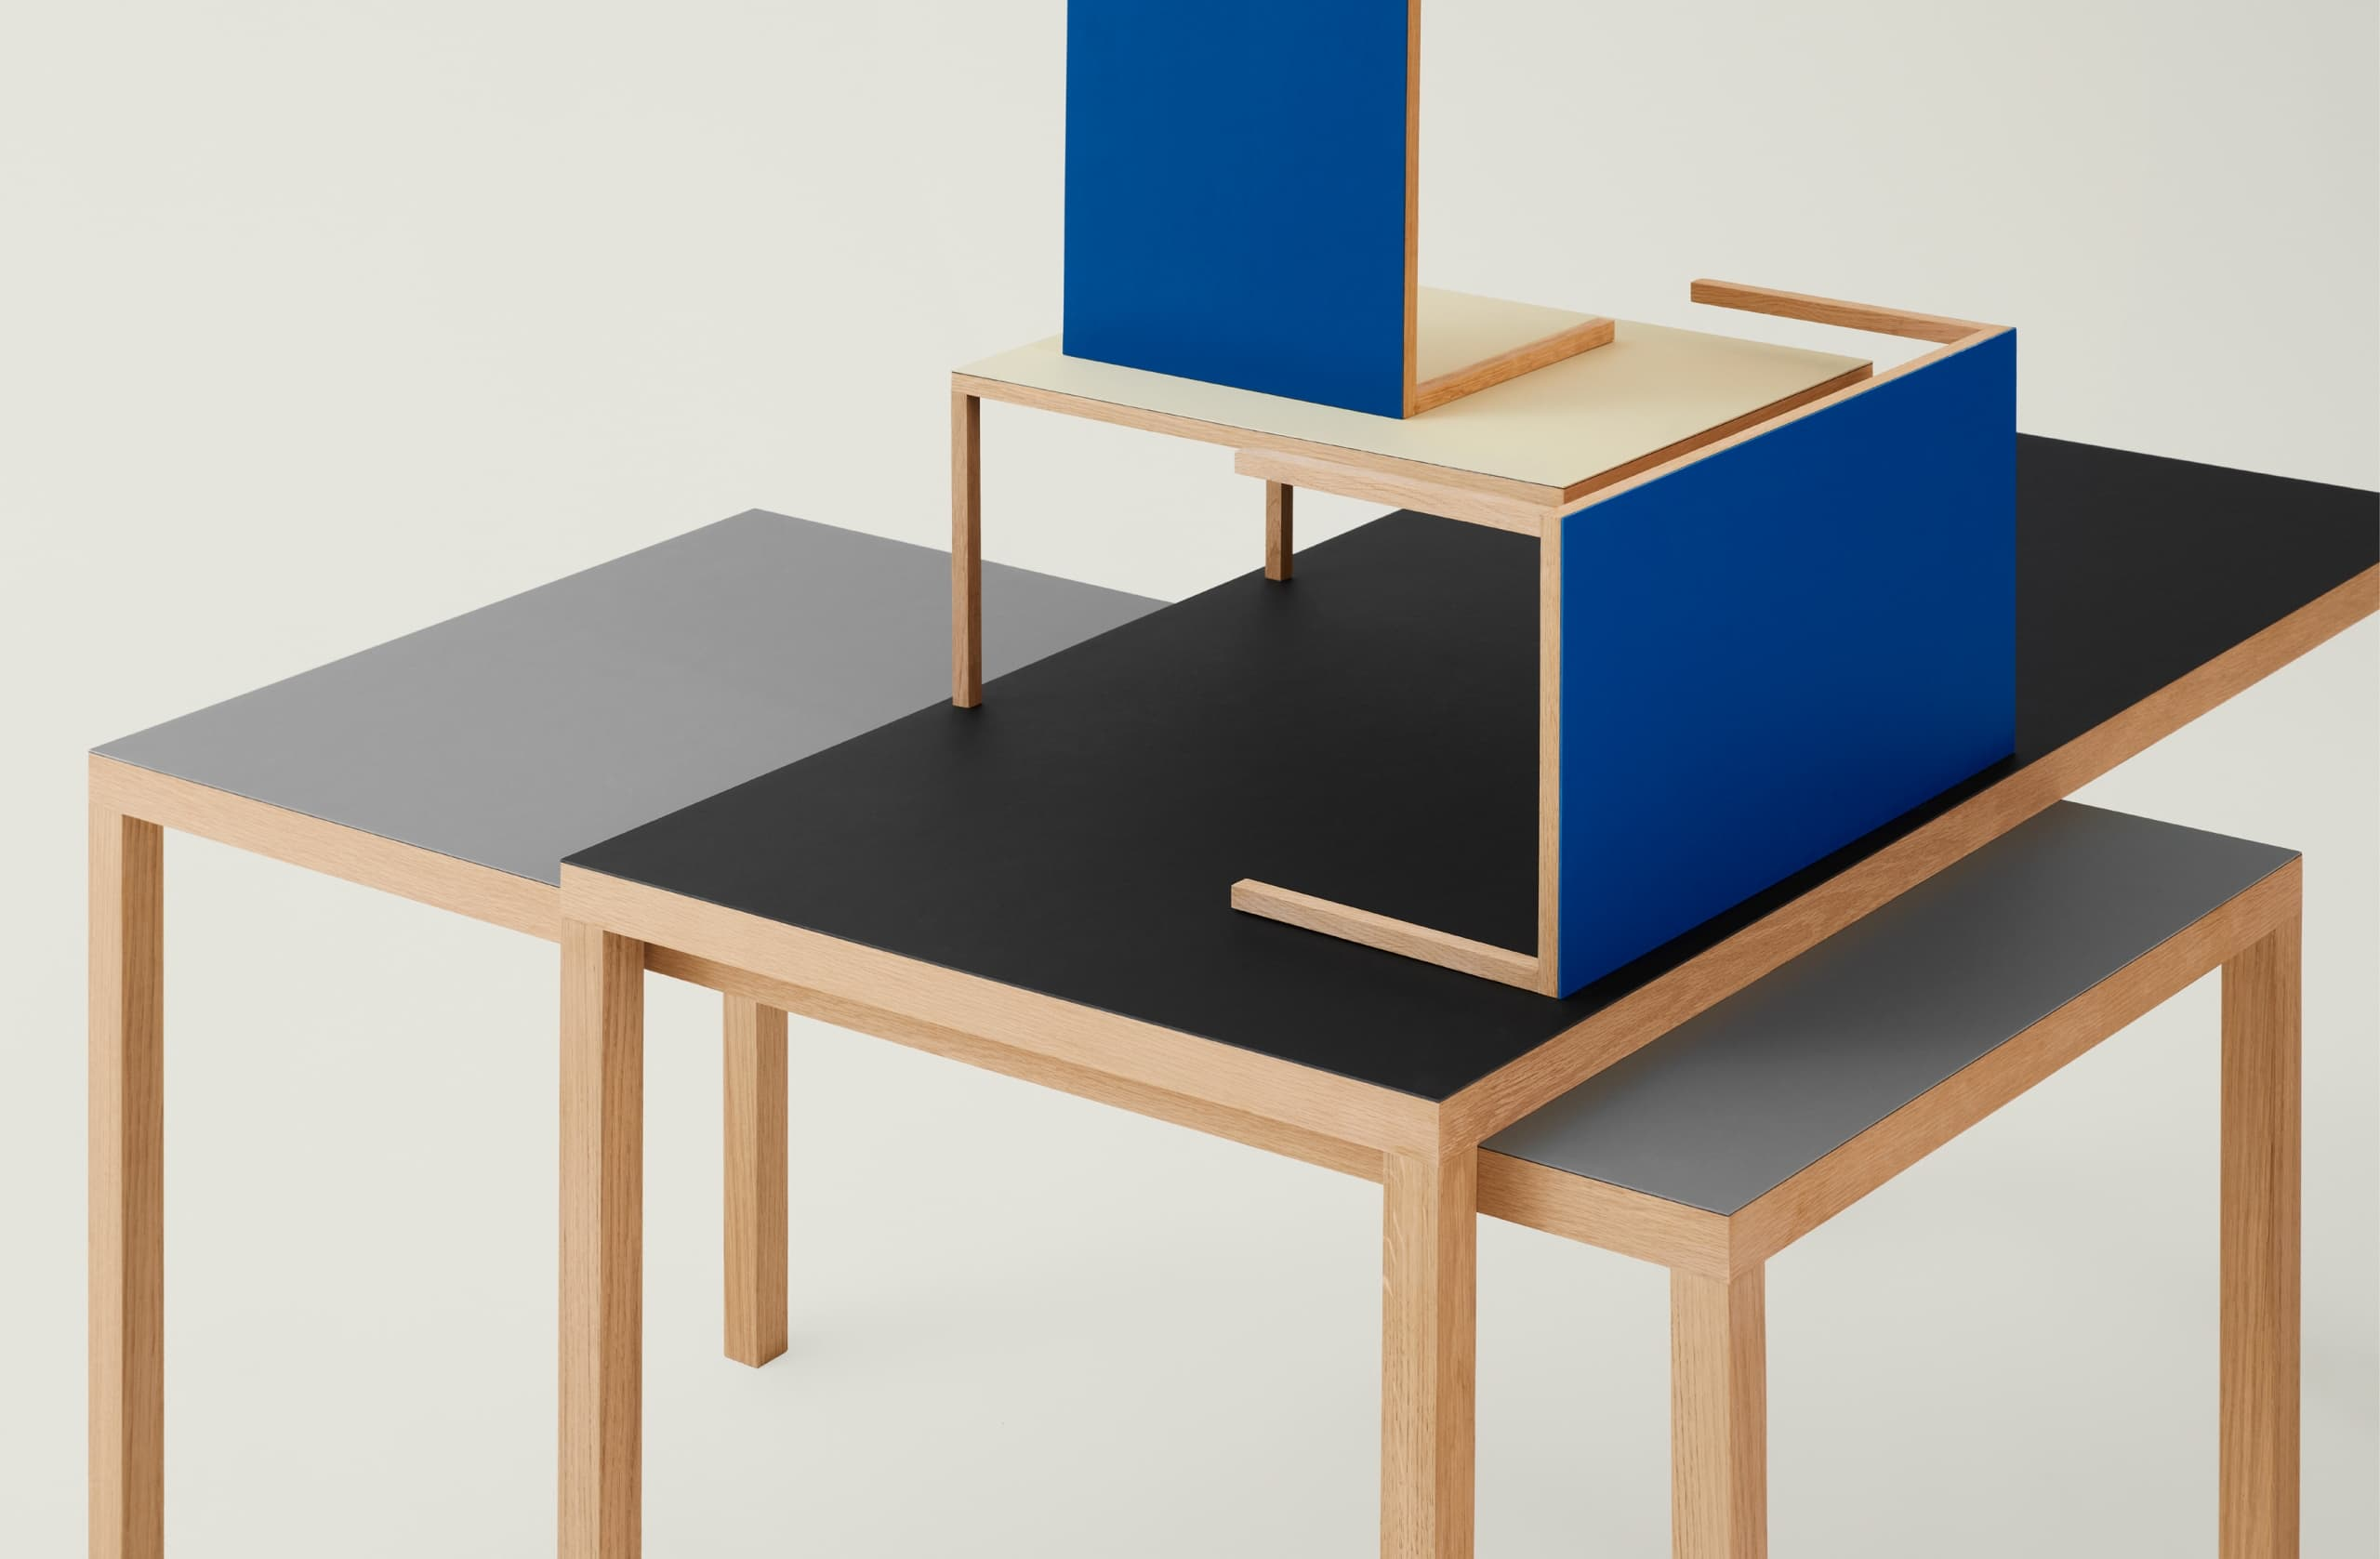 Studio Sander Plug – MacGuffin Magazine - Desk on Desk